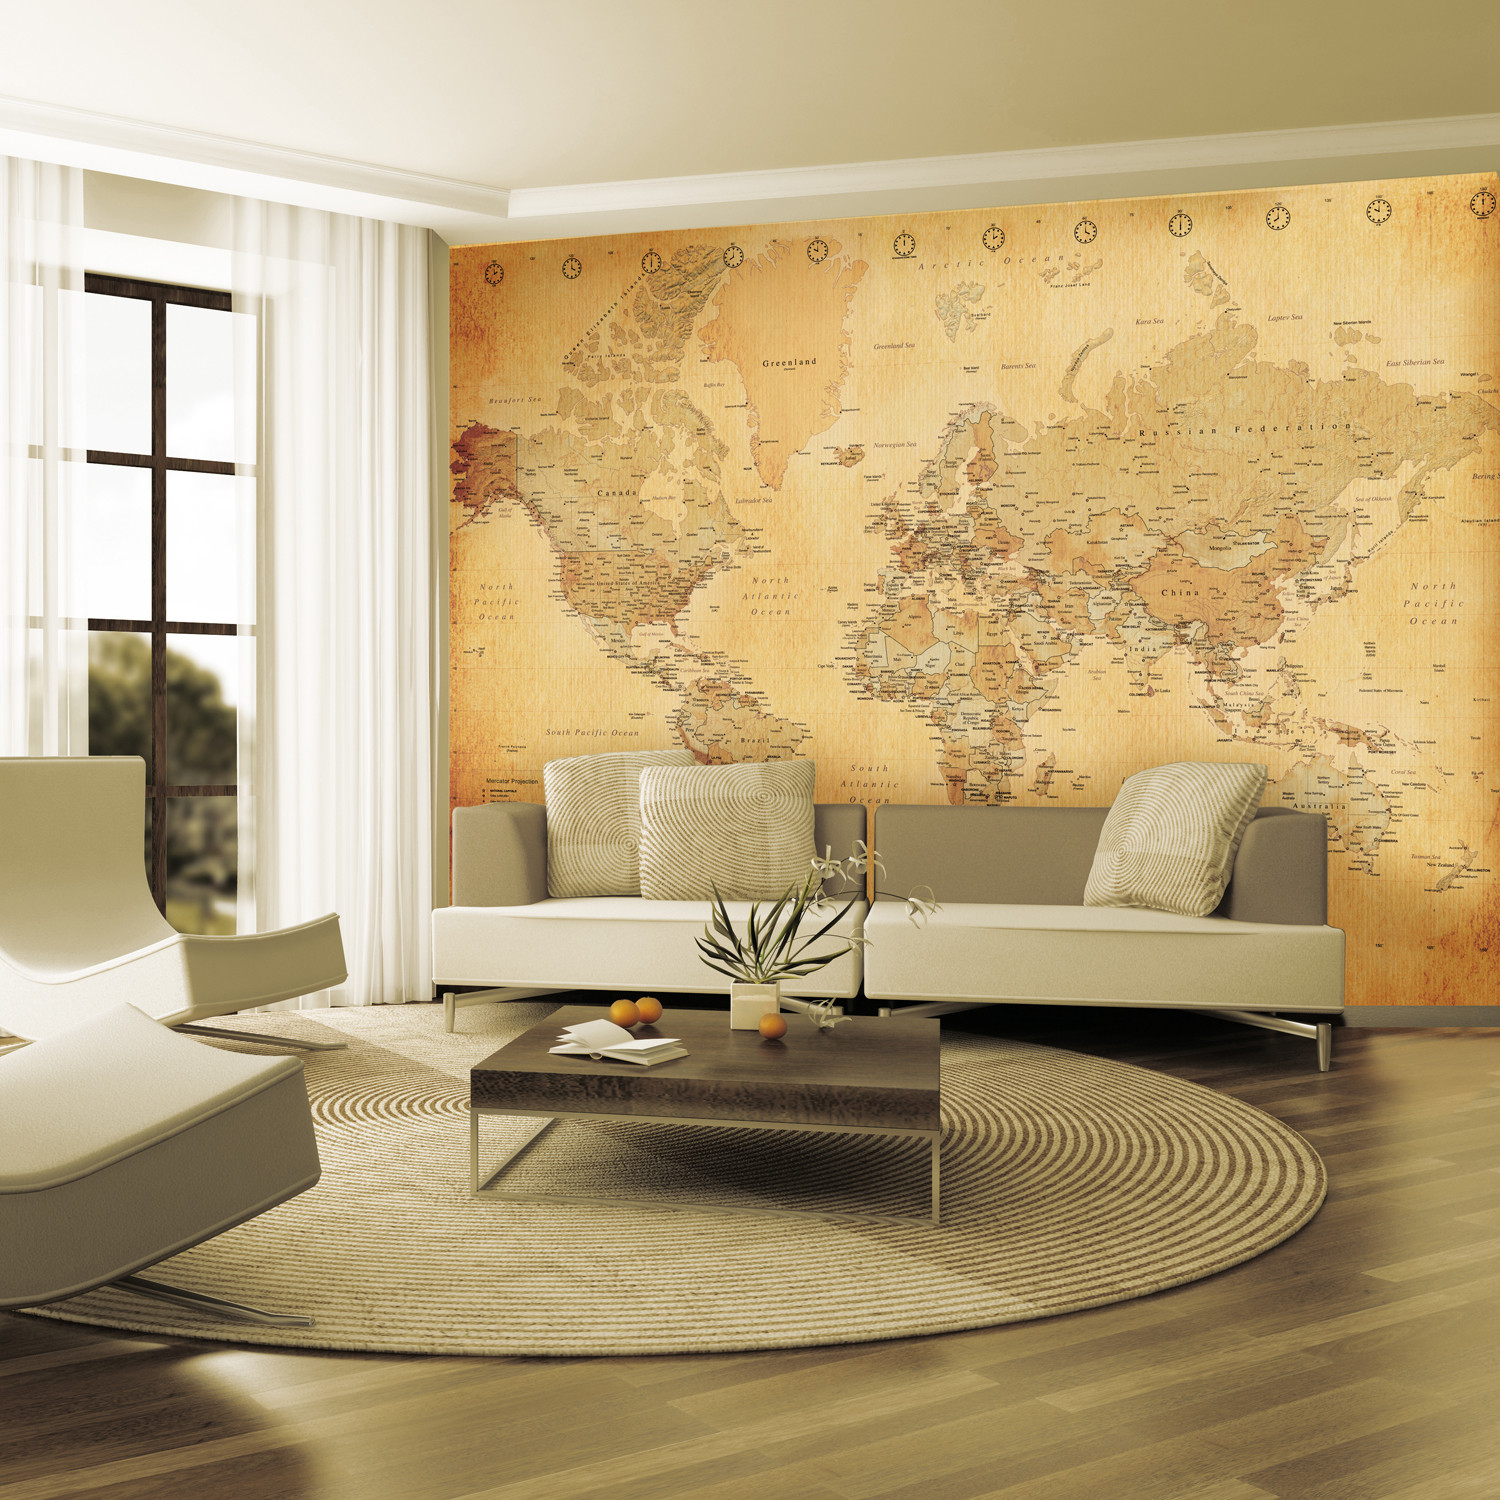 Vintage world map 1 wall murals touch of modern for Antique world map wall mural